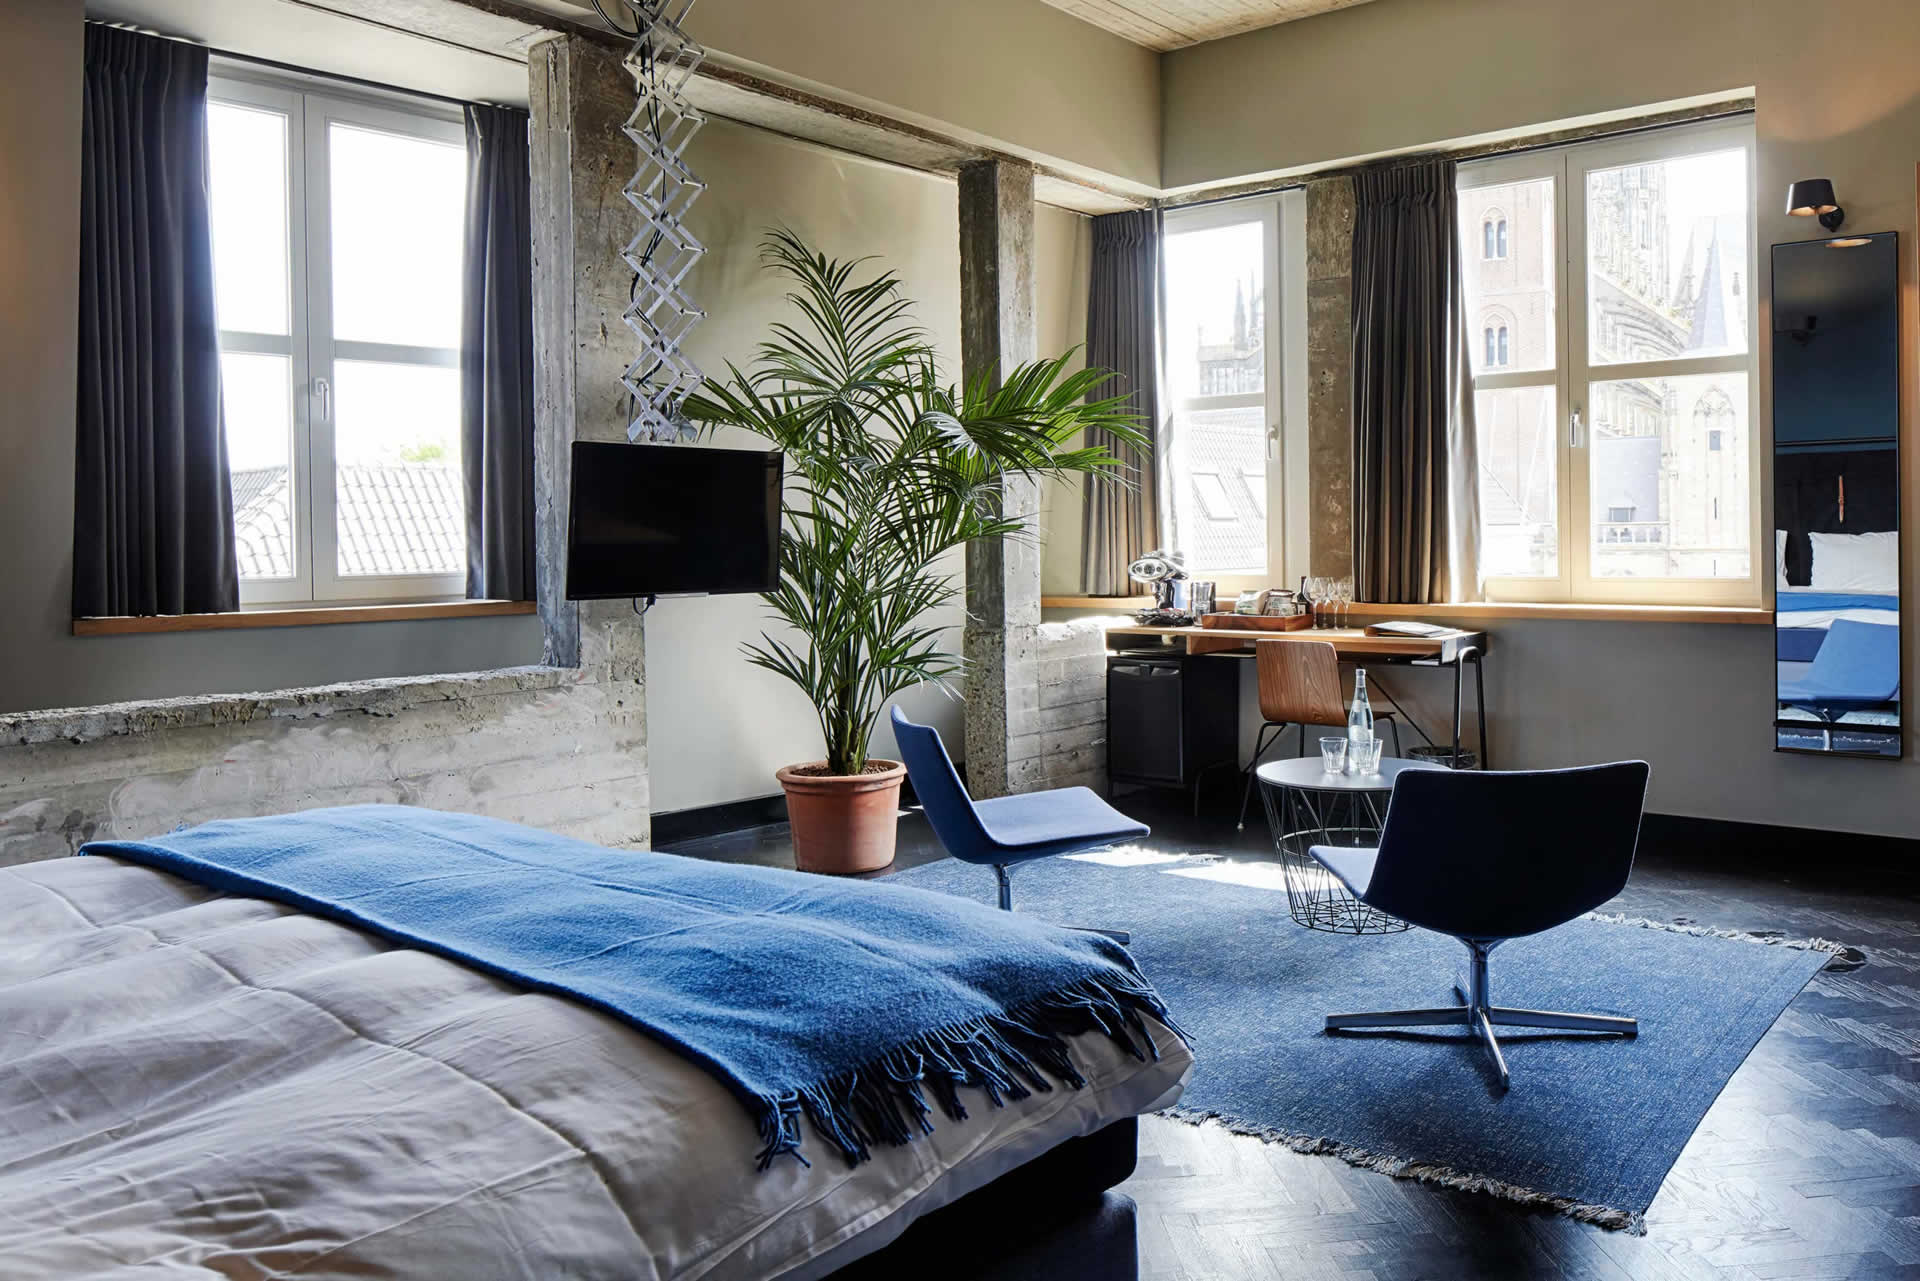 The duke boutique hotel in den bosch for Design boutique hotel